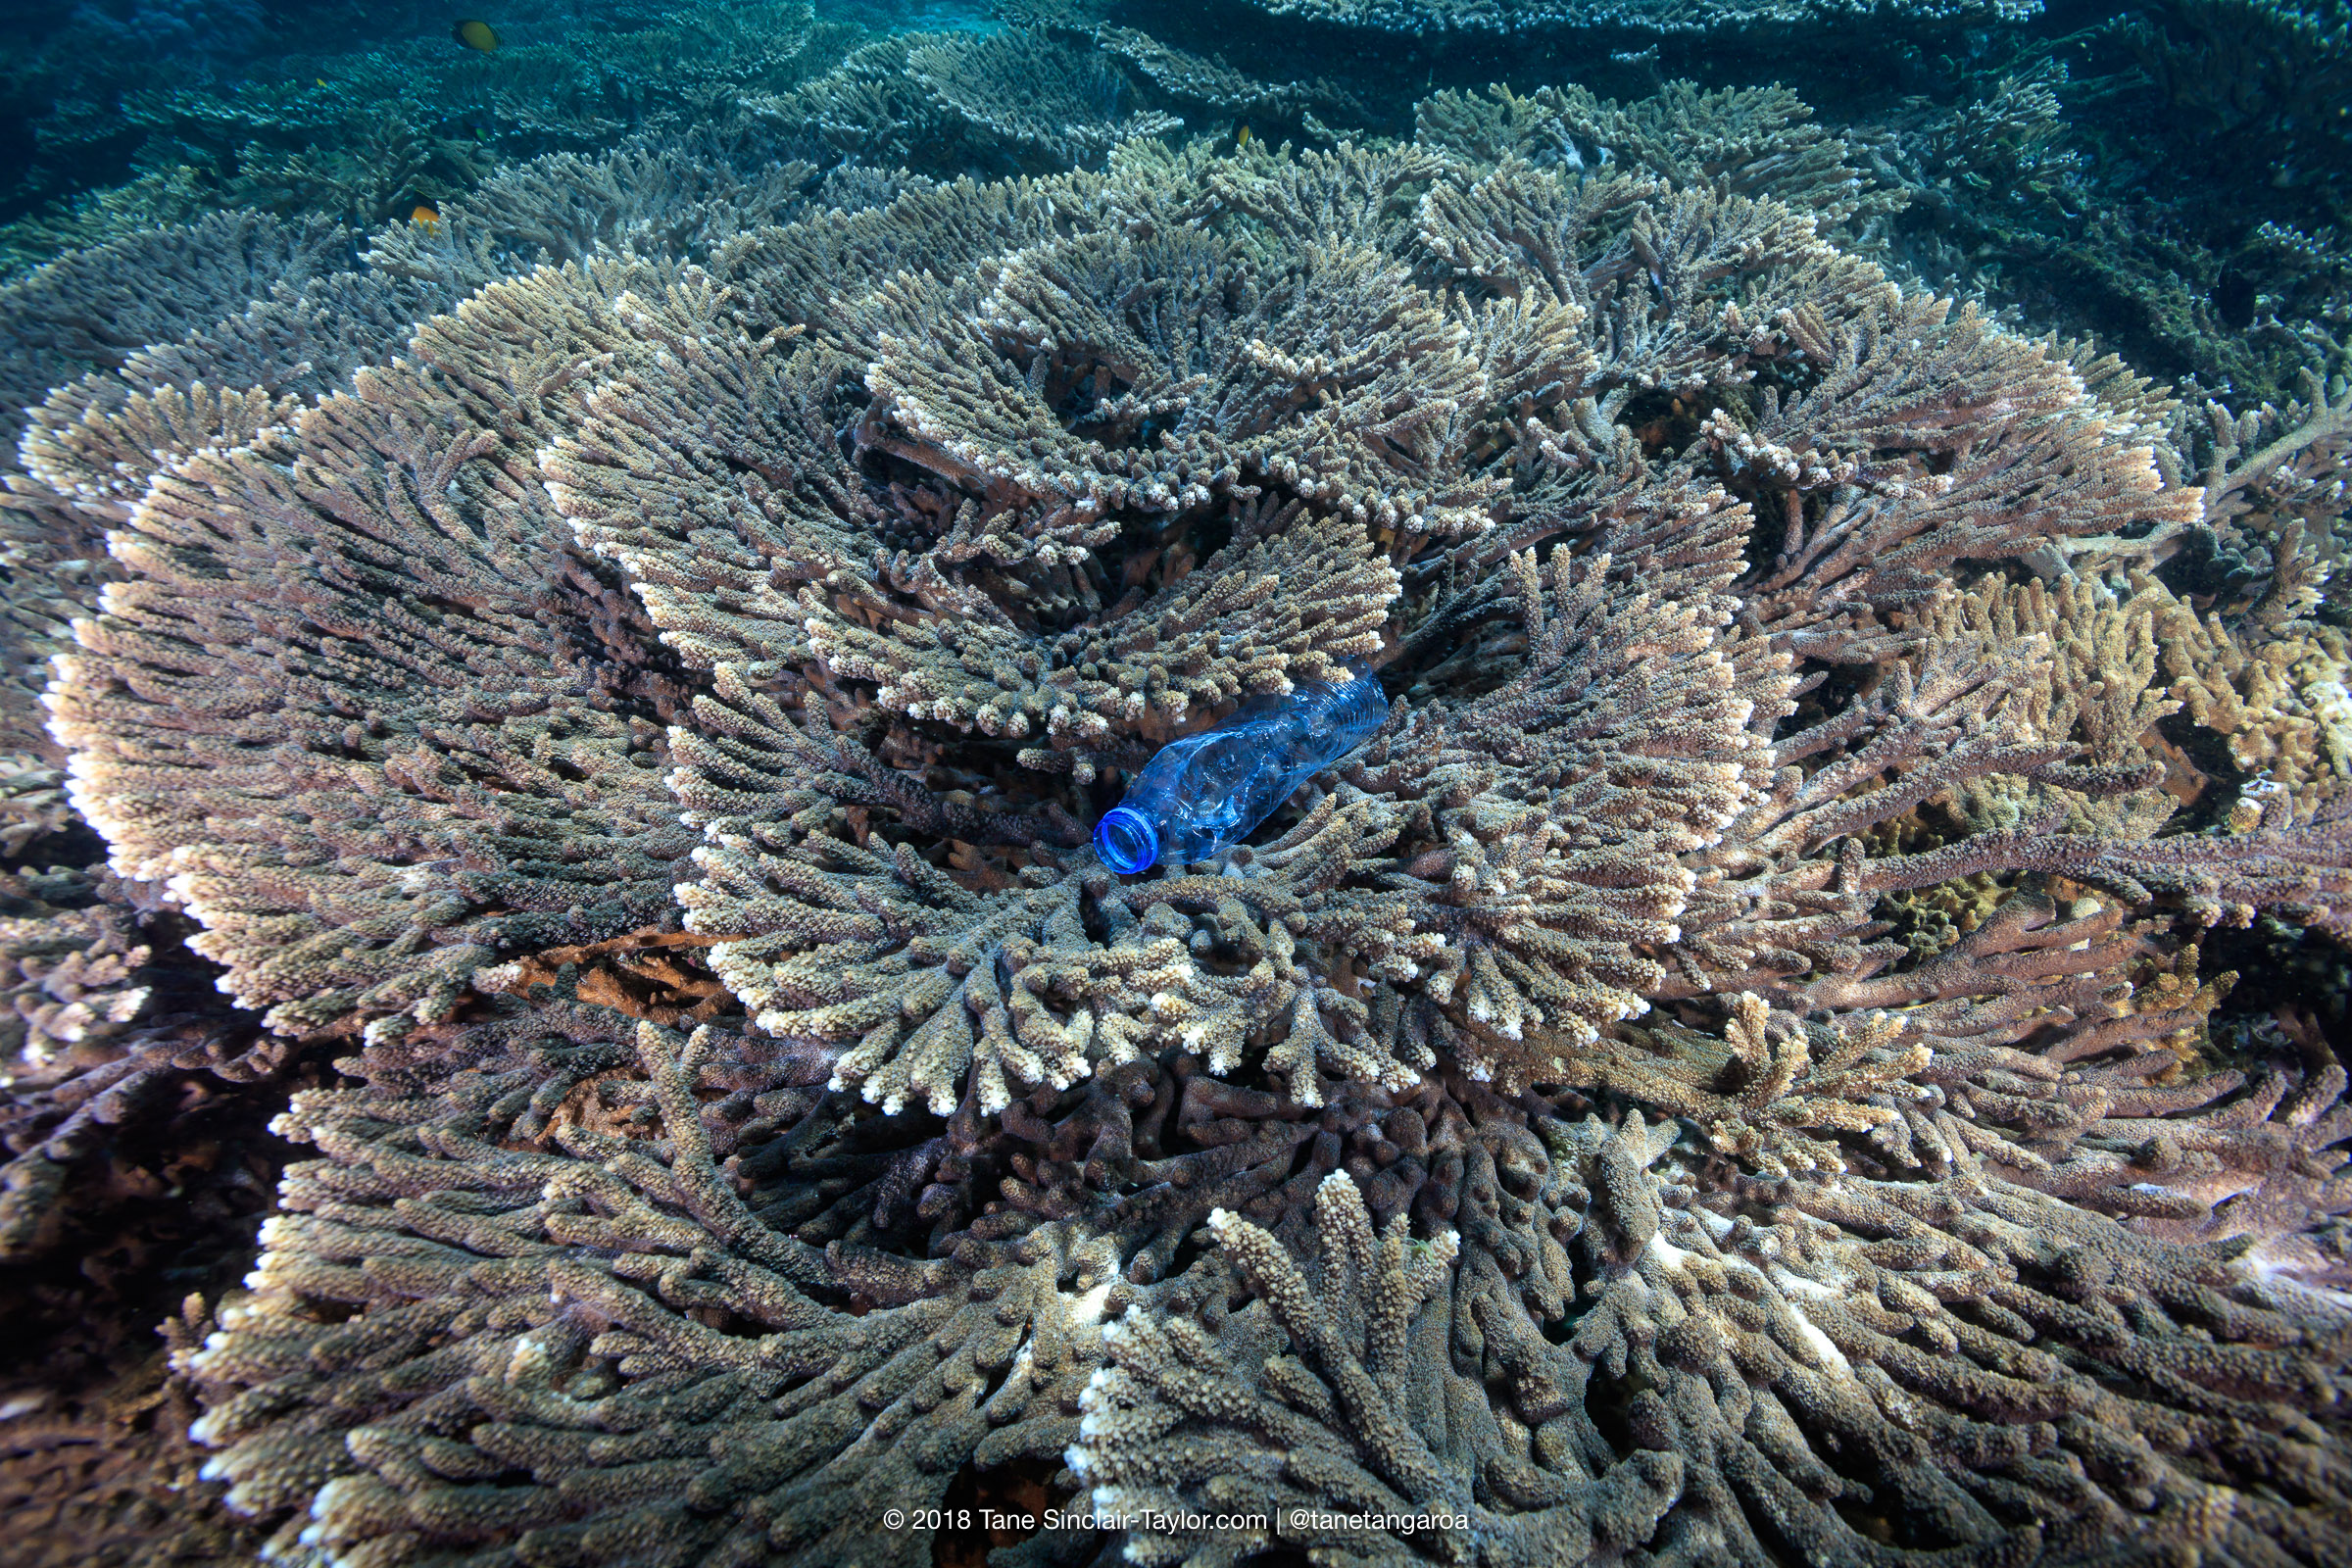 Plastic waste fatally infects coral reefs